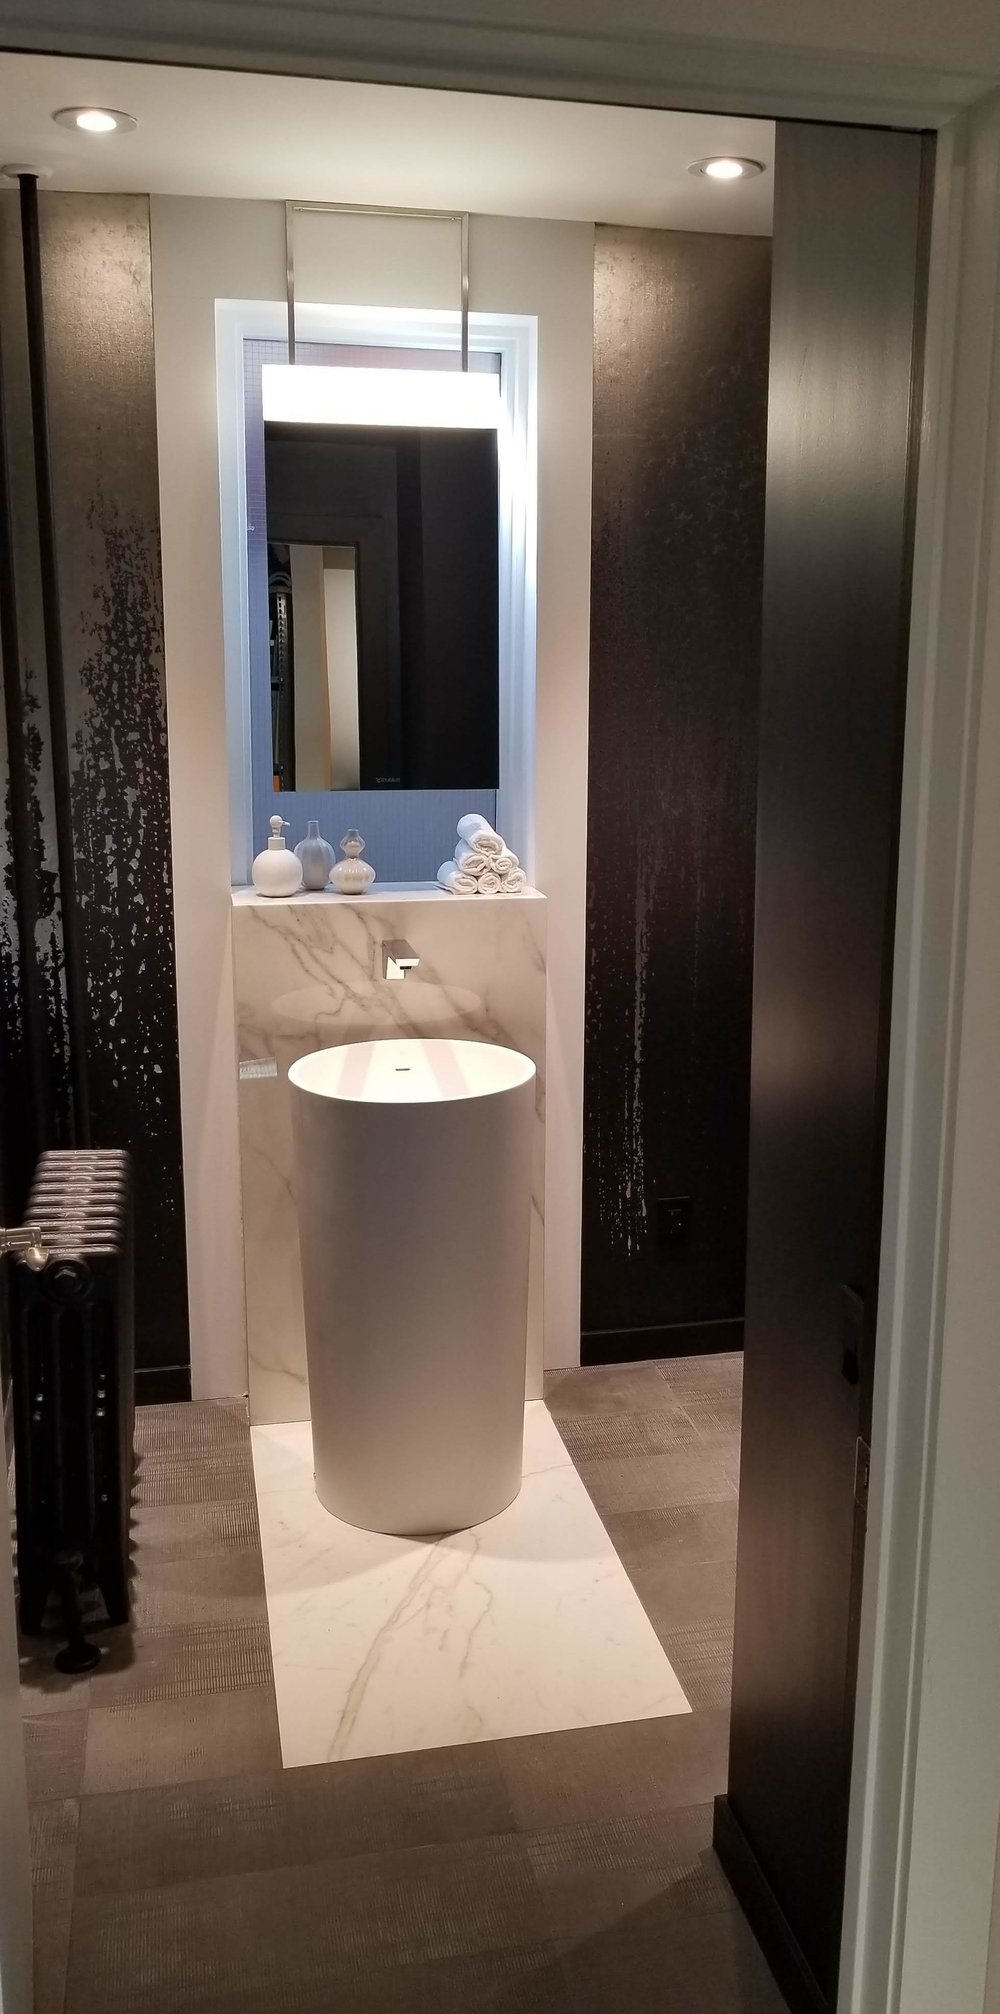 Powder Room Refresh - Everitt Design, Winnipeg, Canada - Project Complete!